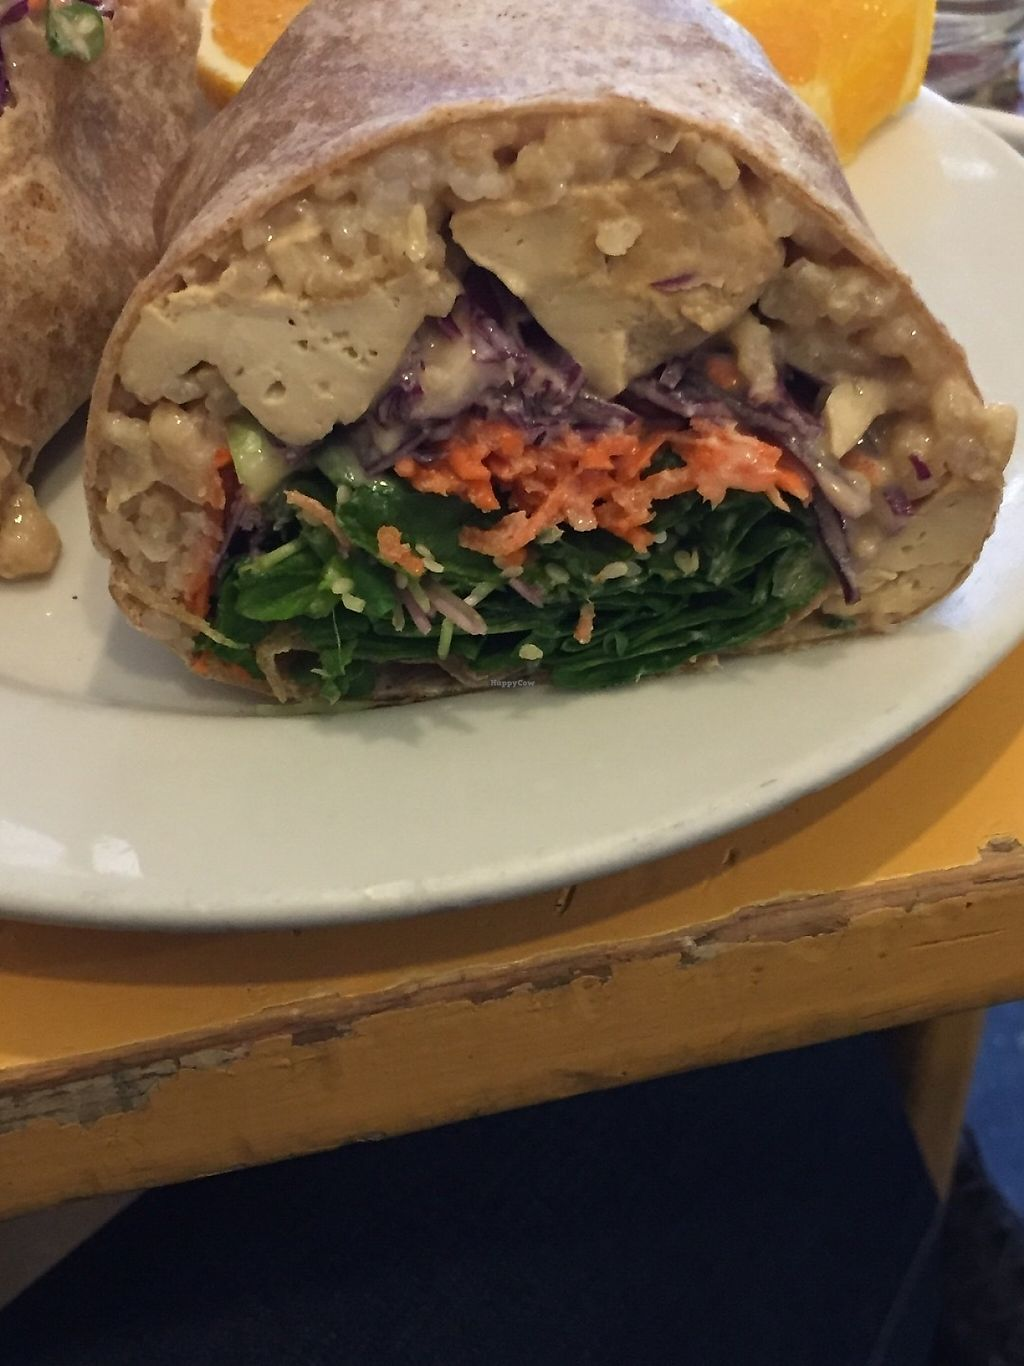 """Photo of Main Squeeze Natural Foods Cafe  by <a href=""""/members/profile/KaitlynnGill"""">KaitlynnGill</a> <br/>Fortune wrap. Rice, tofu, spinach, carrots, scallion and ginger sauce <br/> May 5, 2017  - <a href='/contact/abuse/image/2159/255950'>Report</a>"""